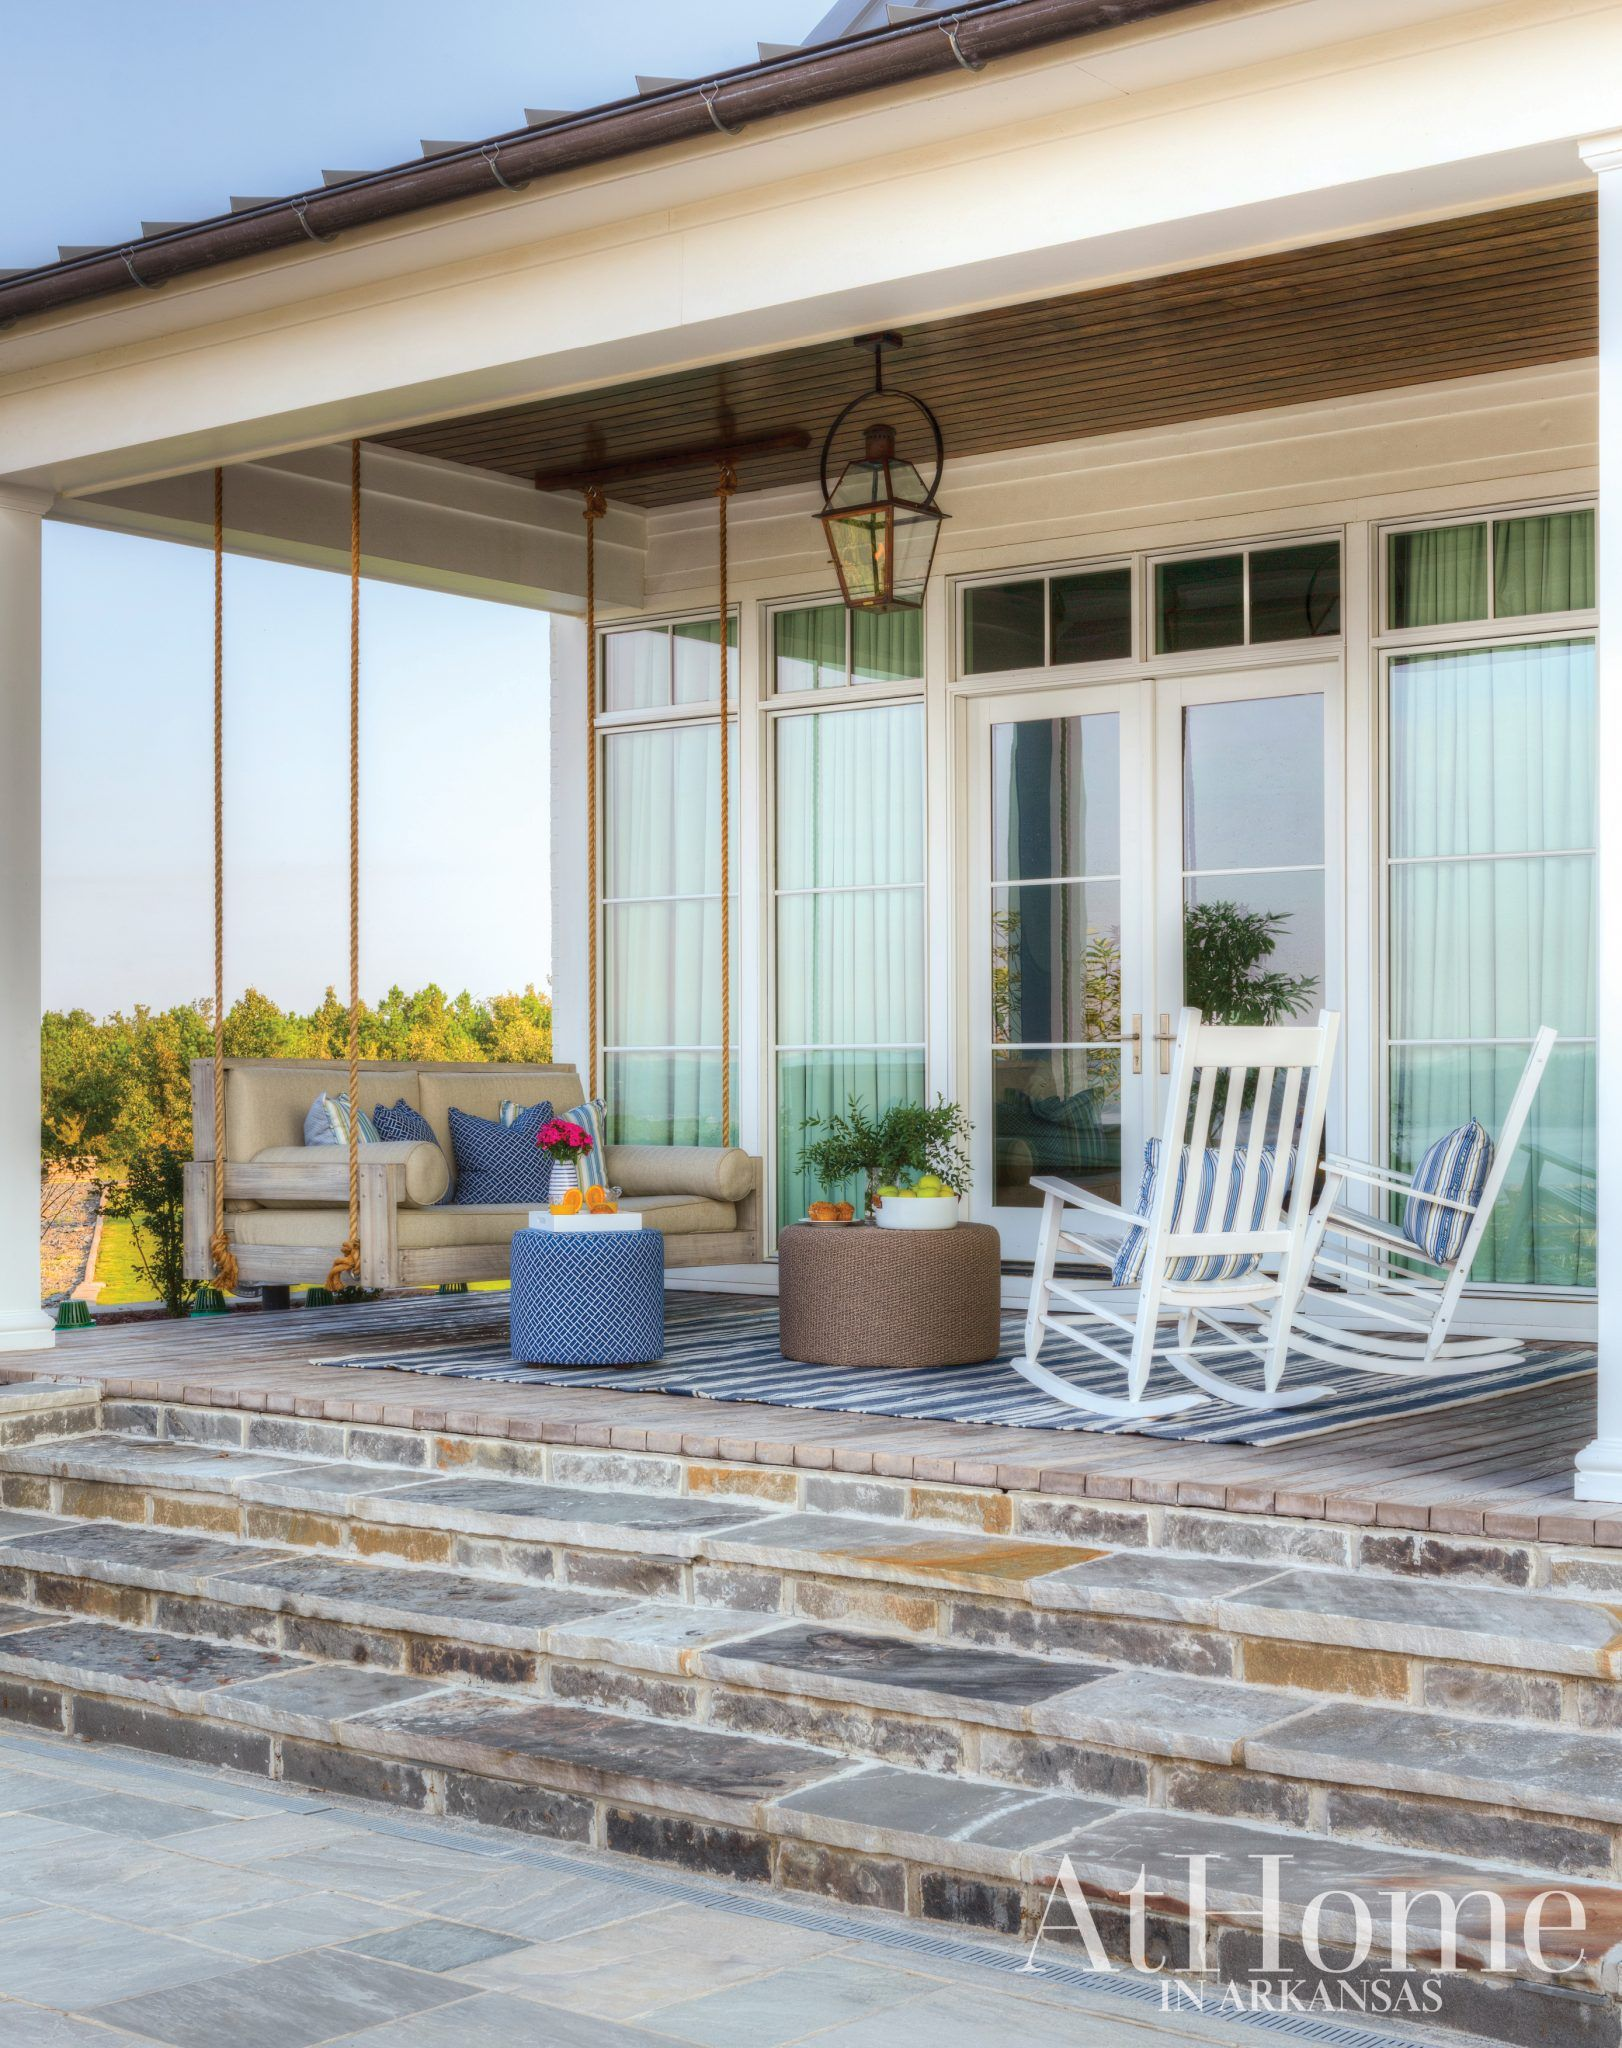 In Full View In 2020 Home Porch Patio House Goals